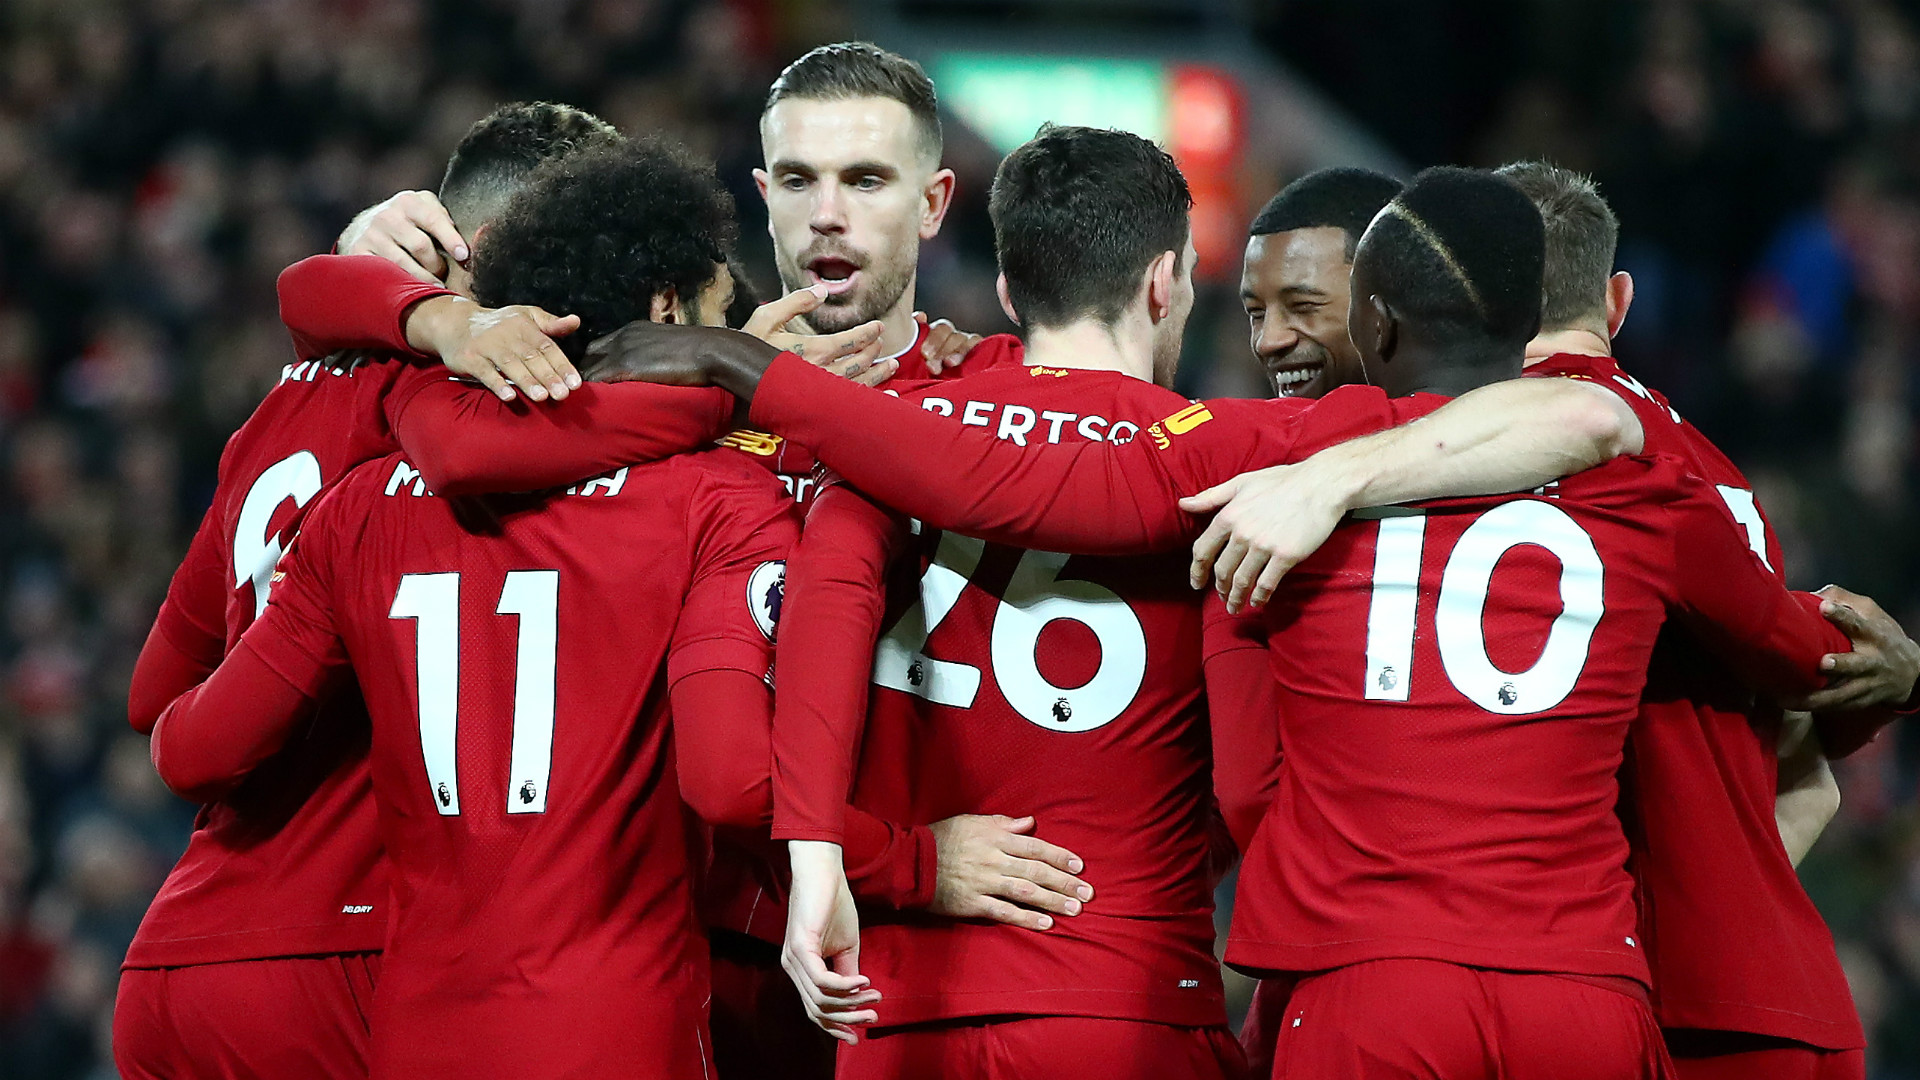 'Liverpool strike blind fear into rivals, including Man City' – Opponents try to mask panic, says Aldridge